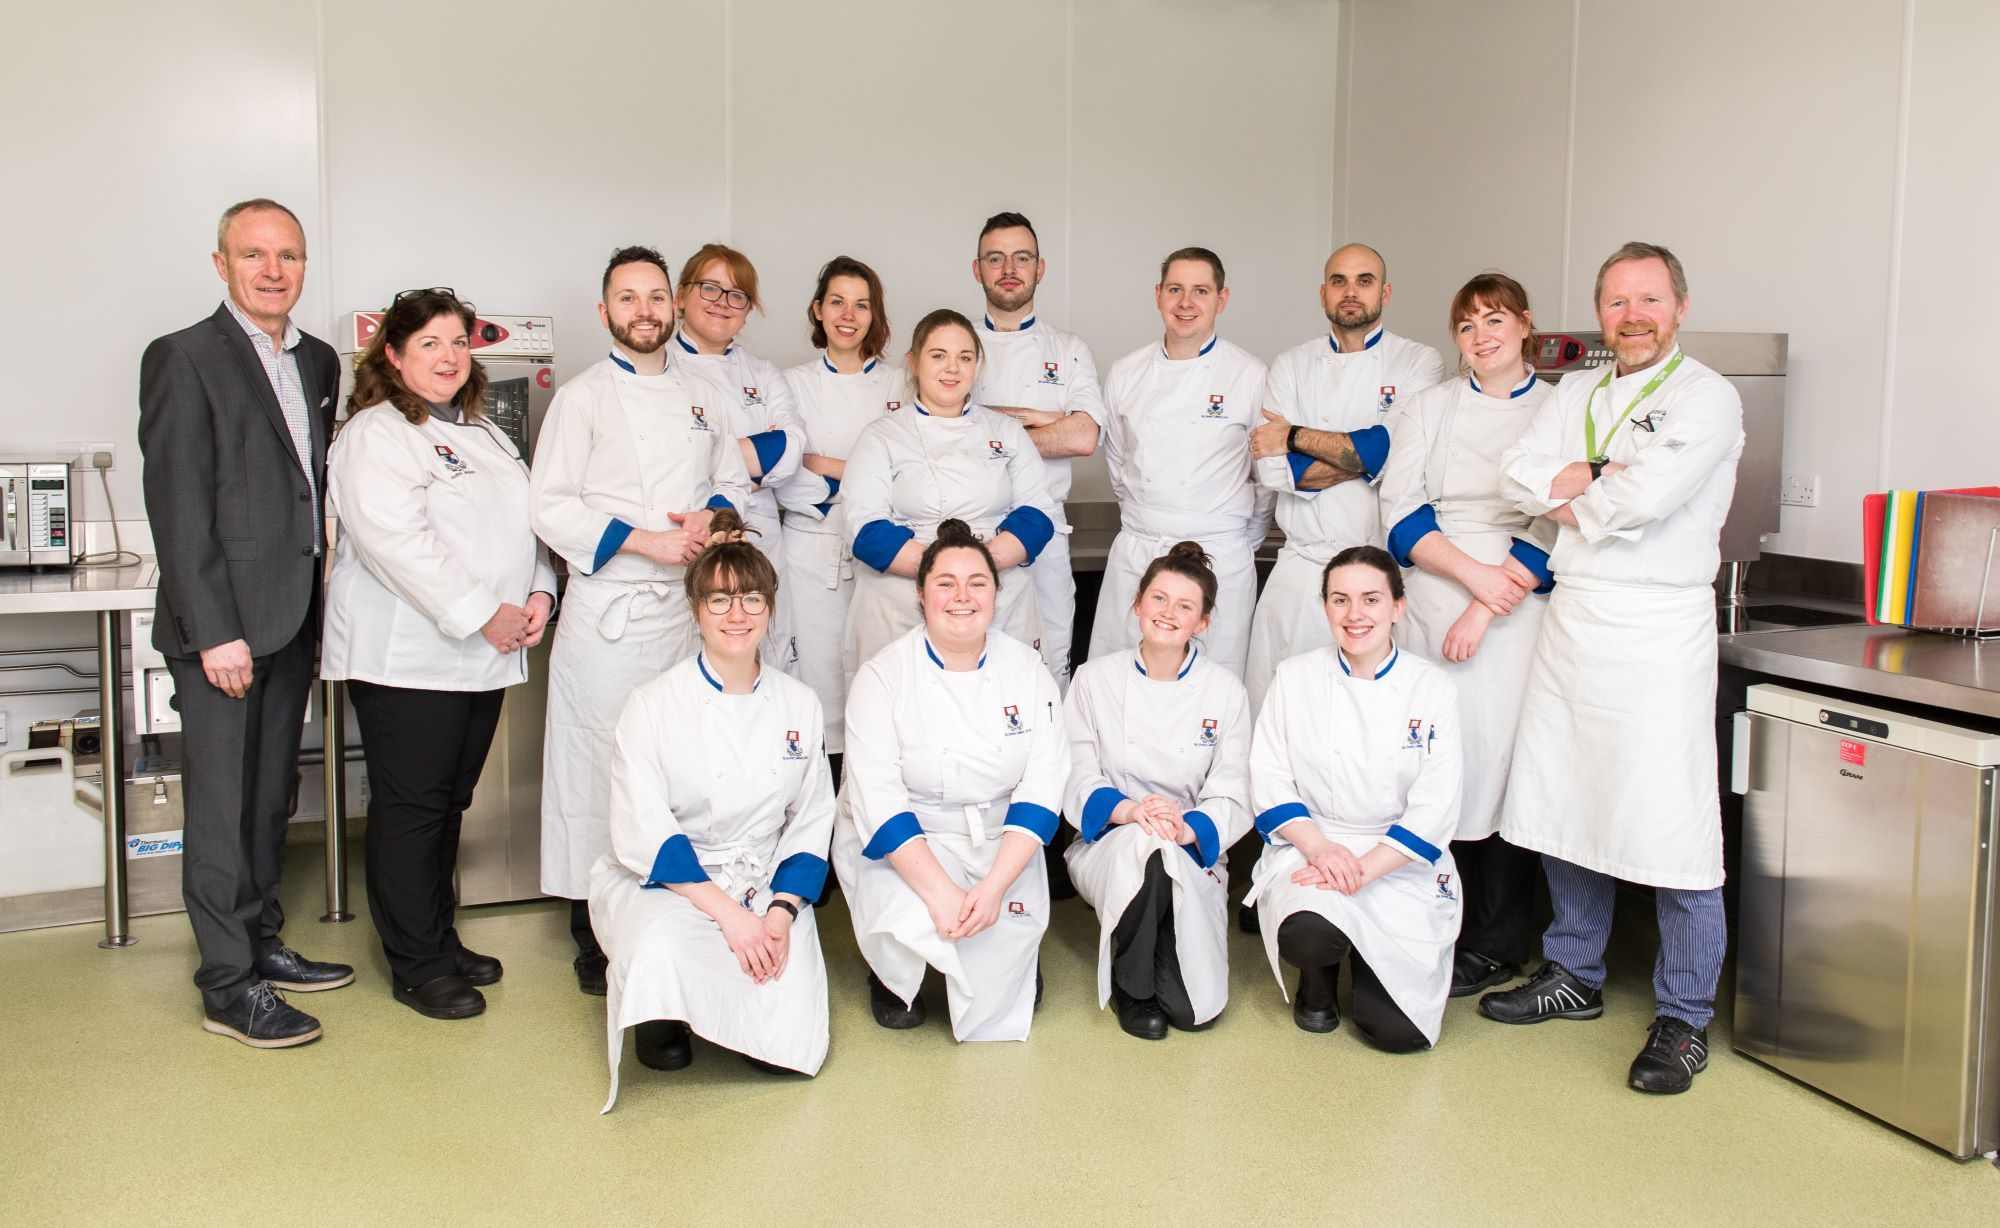 Chef_takeover_group_2020